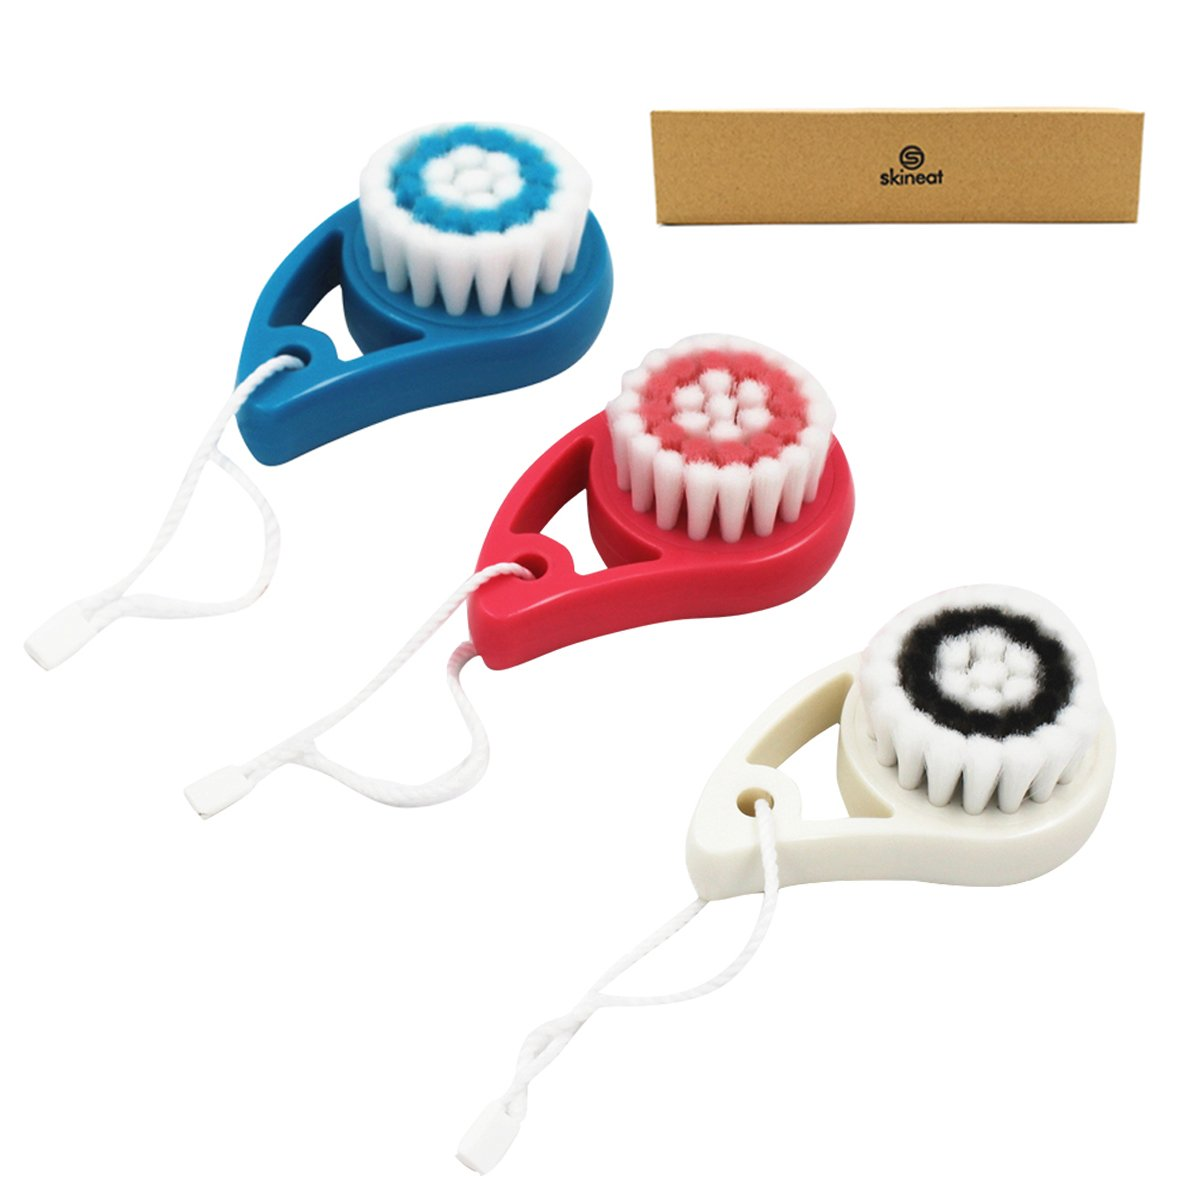 skineat Facial Cleansing Brush And Bodys Soft Red White And Blue Small Set of 3 Pack